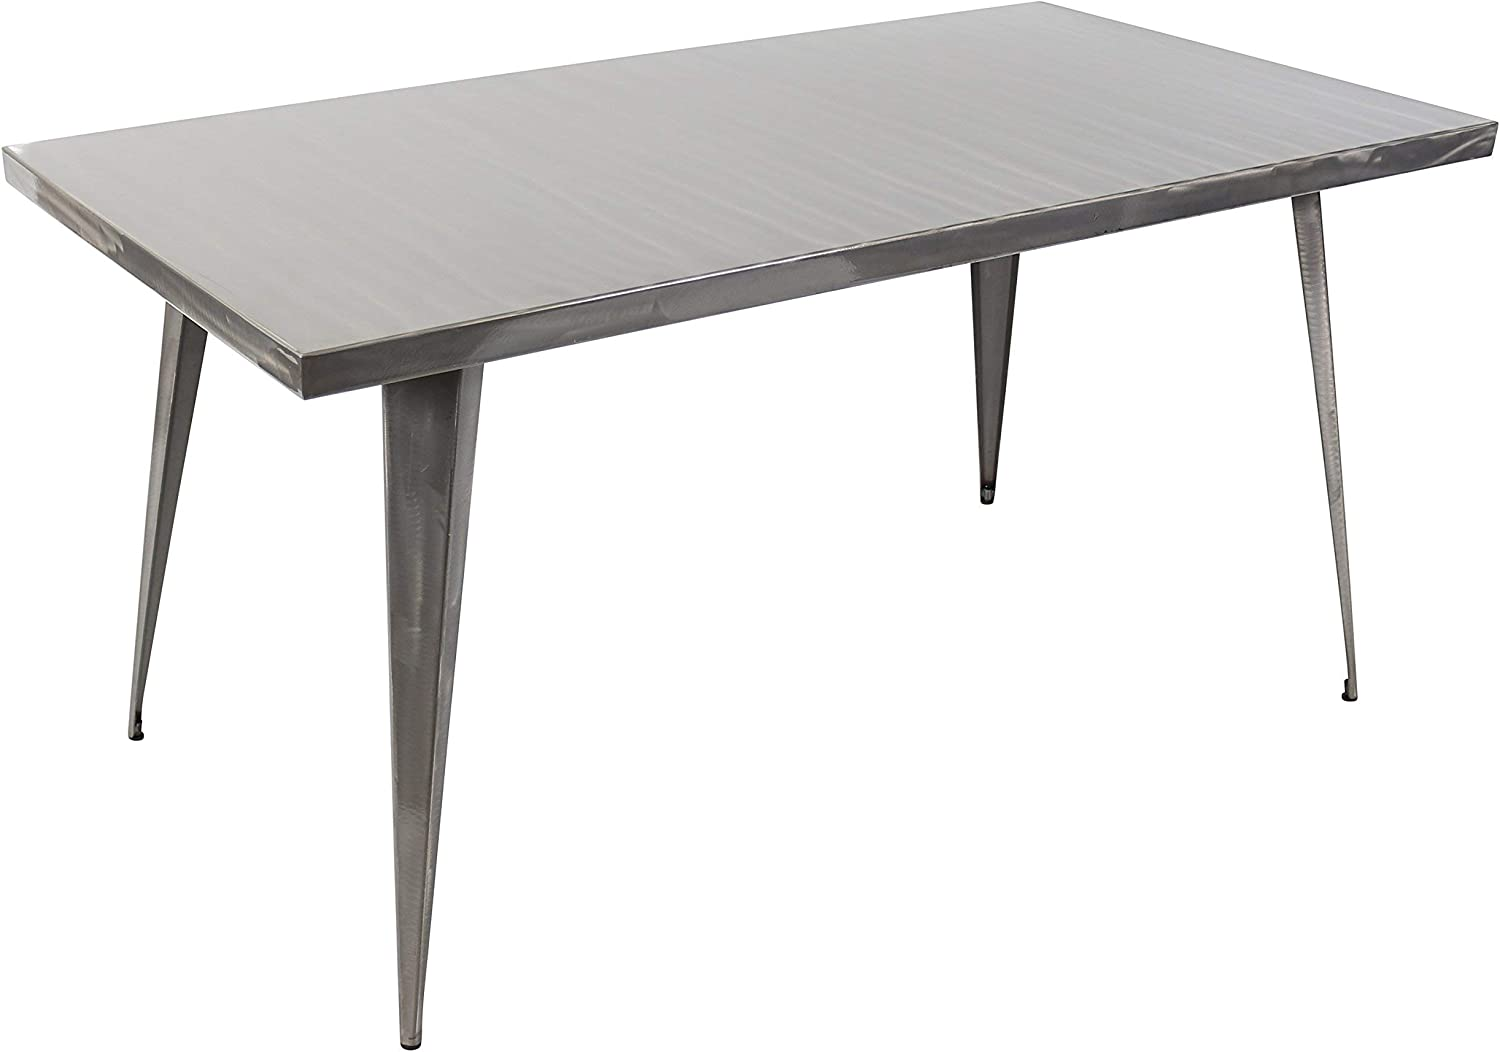 WOYBR Metal Material Austin Dining Table, Silver